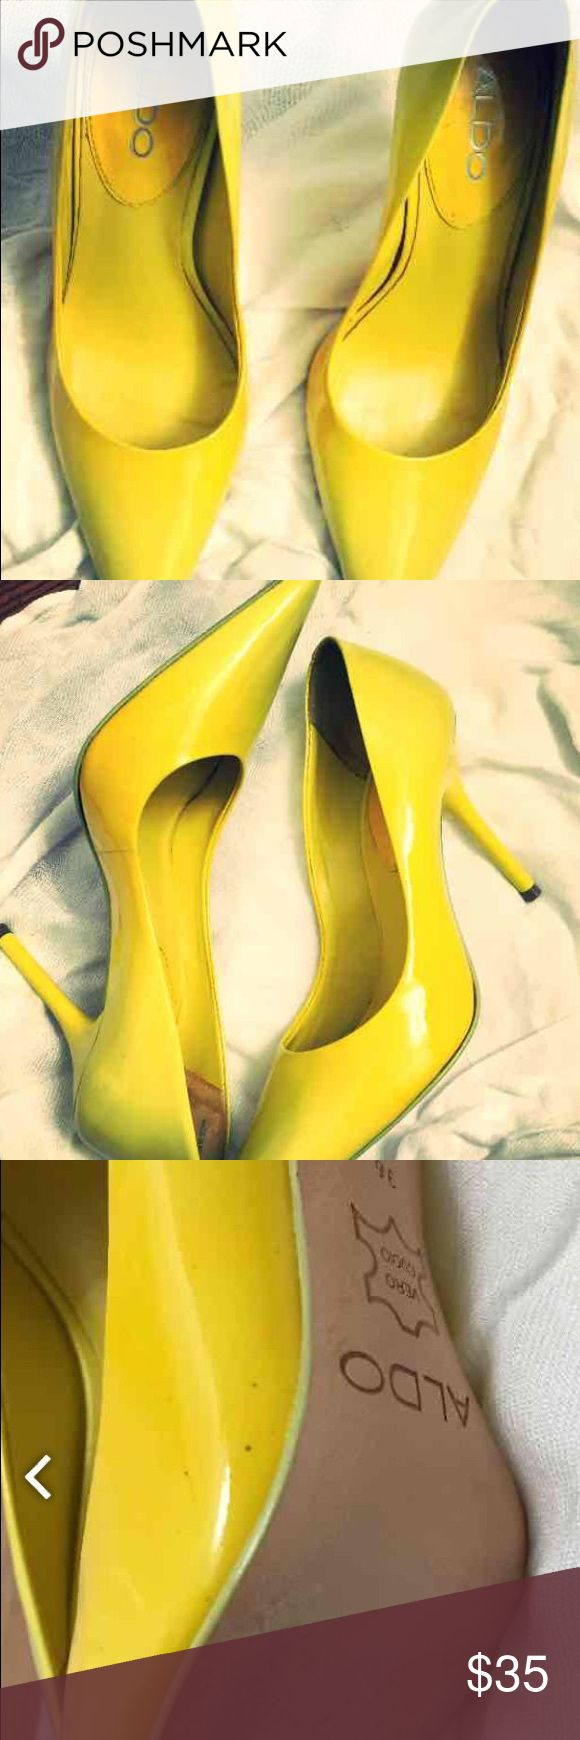 Ombré yellow pumps There too small for me!😔 ALDO Shoes Heels